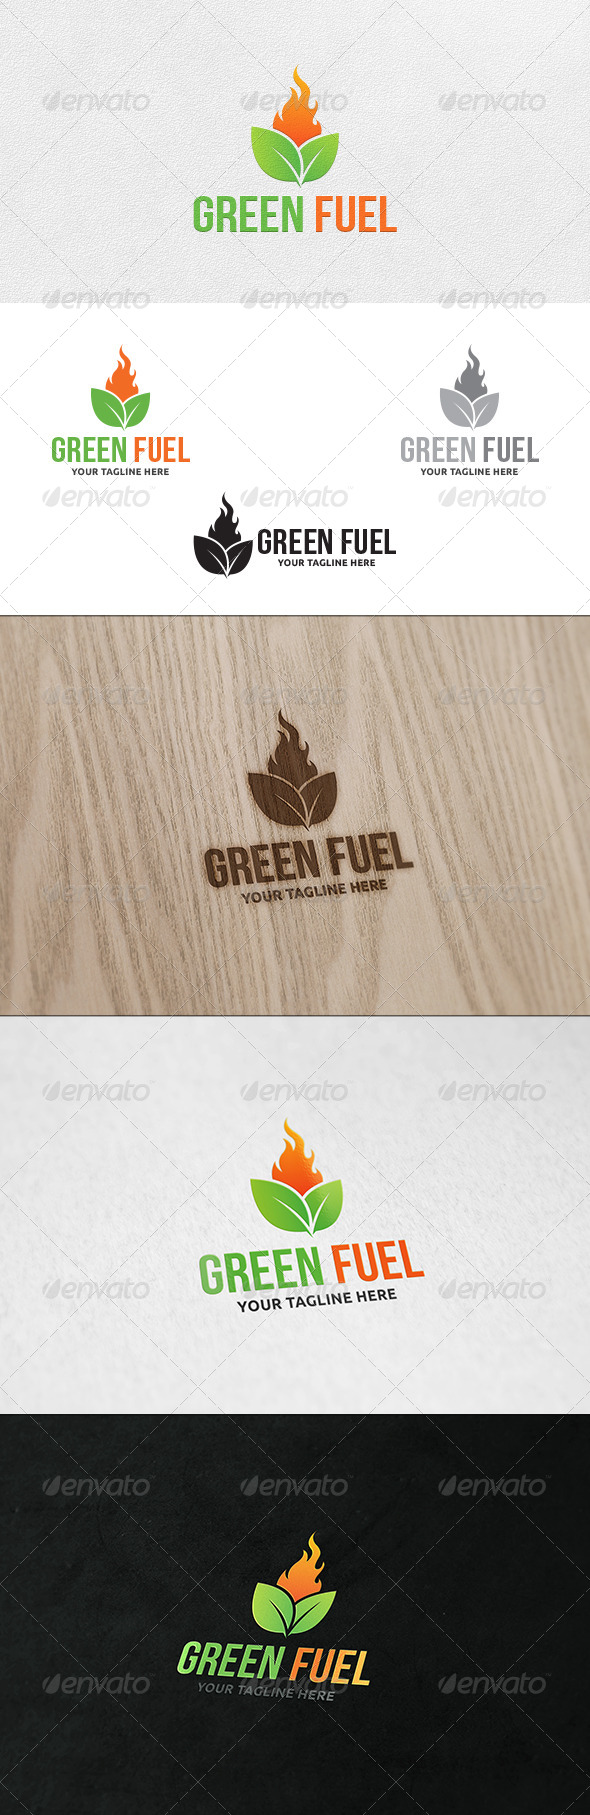 GraphicRiver Green Fuel Logo Template 6828879